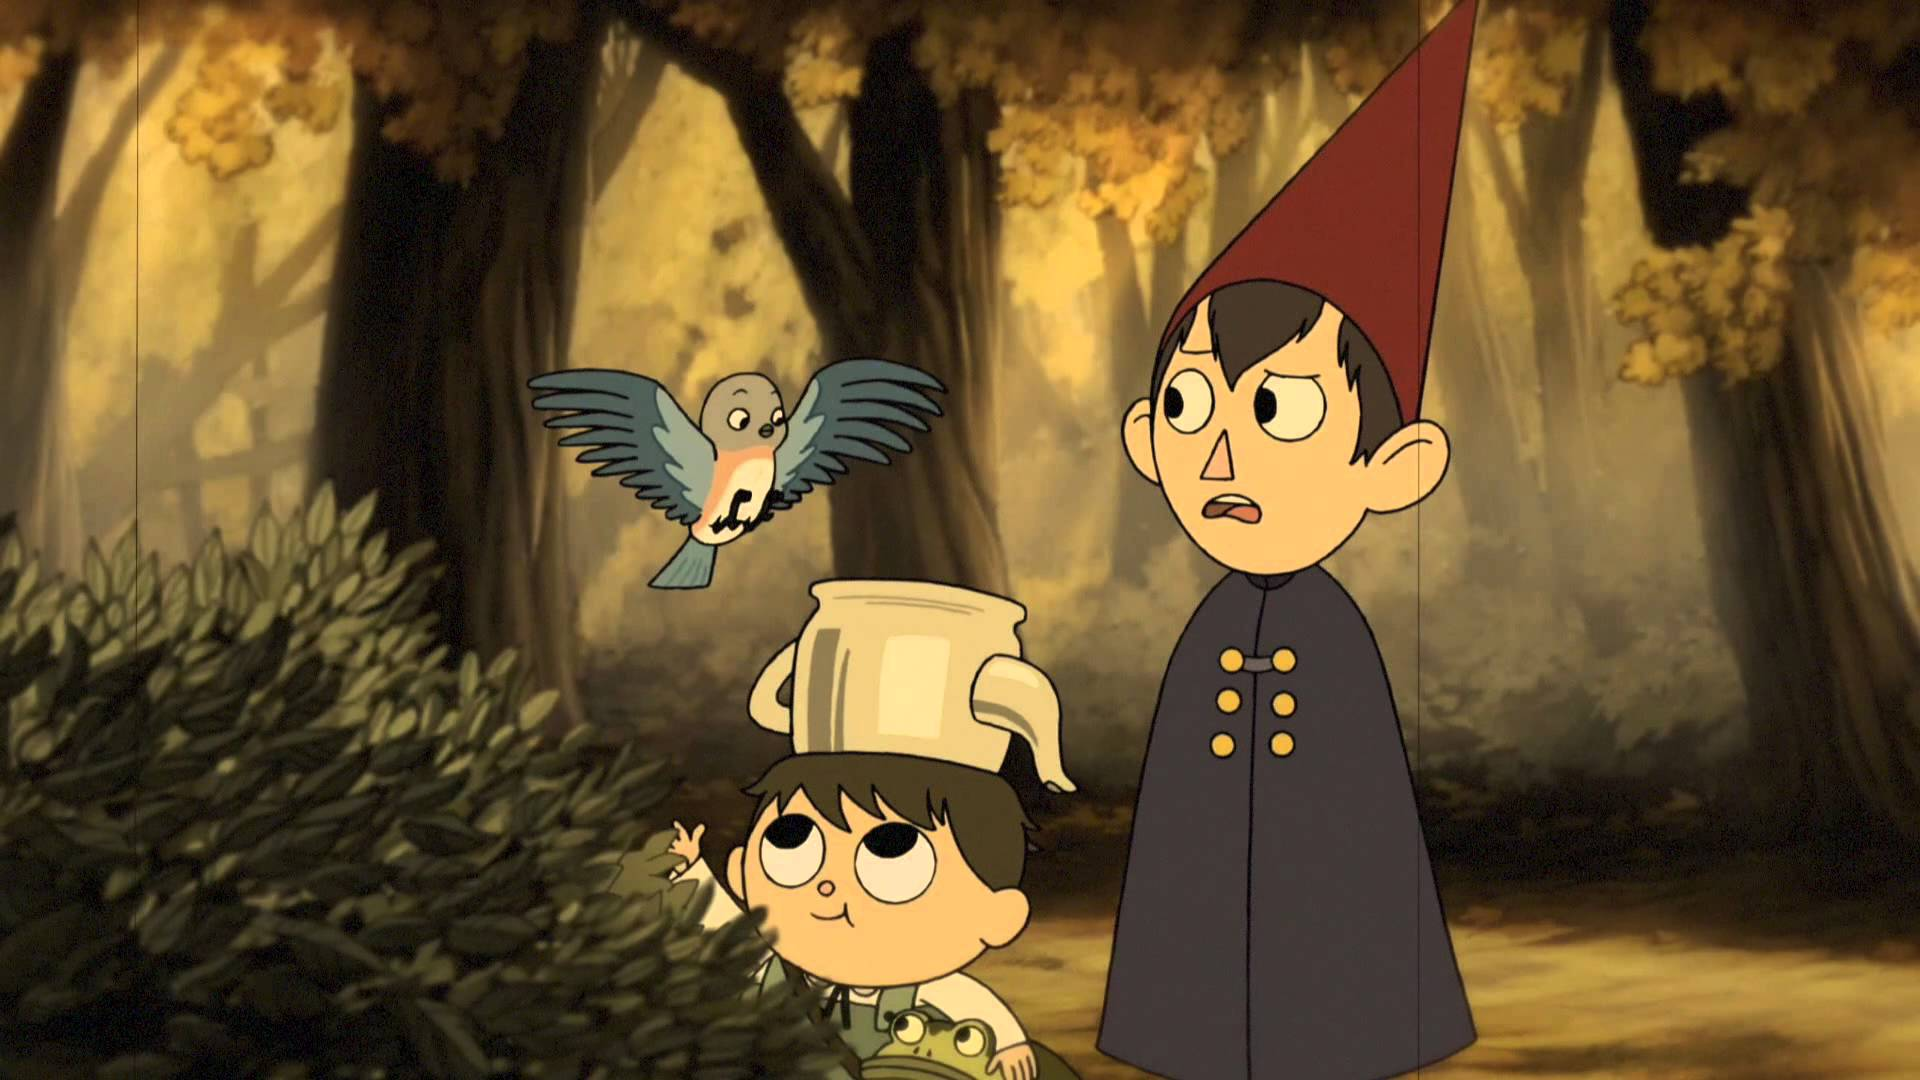 Over The Garden Wall Wallpapers - Wallpaper Cave